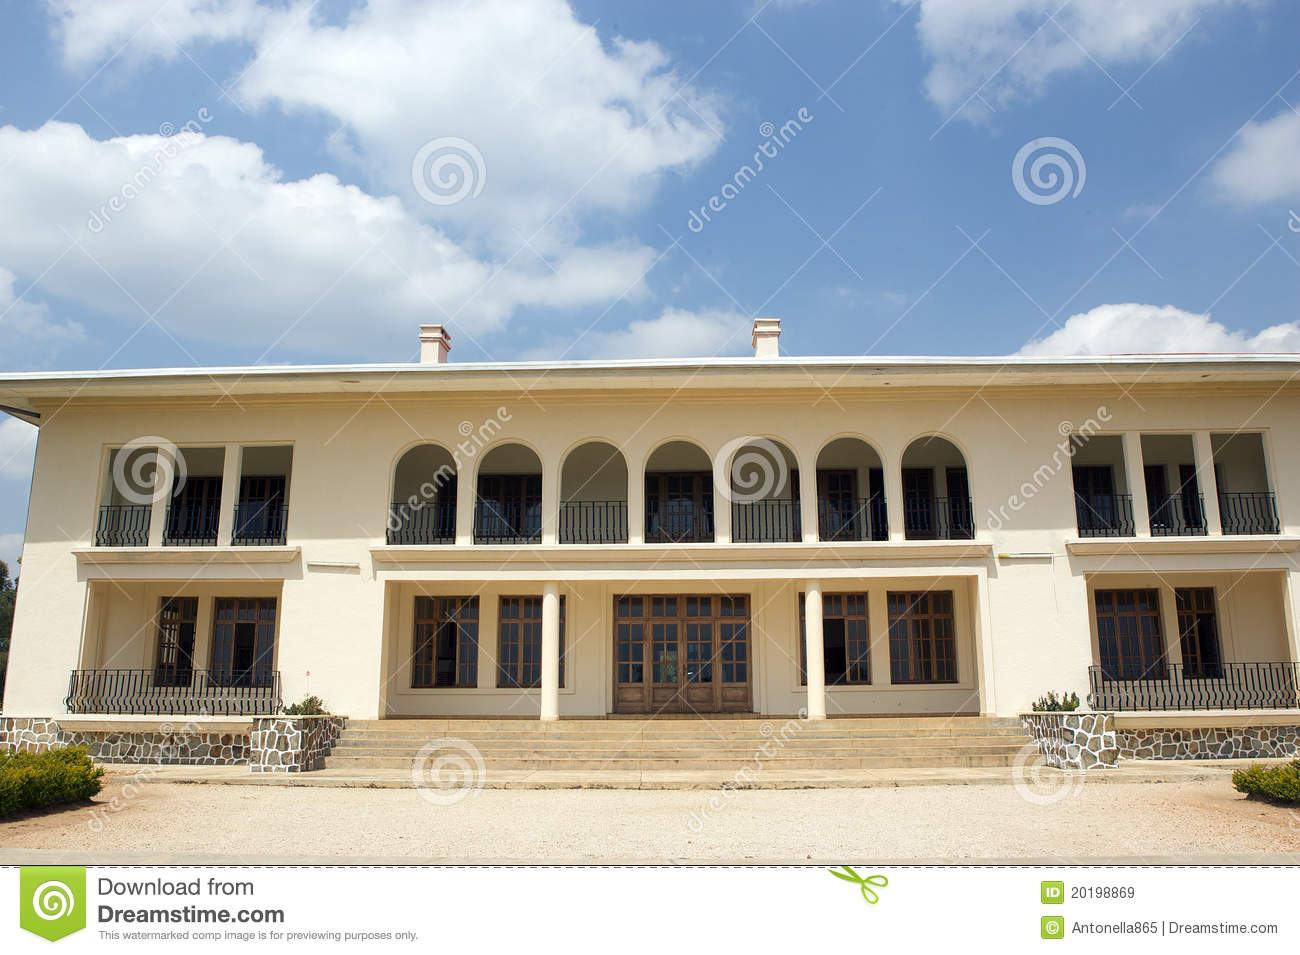 Palace For King Mutara III Rudahigwa In Nyanza It Was Built As A But He Never Had Time To Move Died Before Occupying And